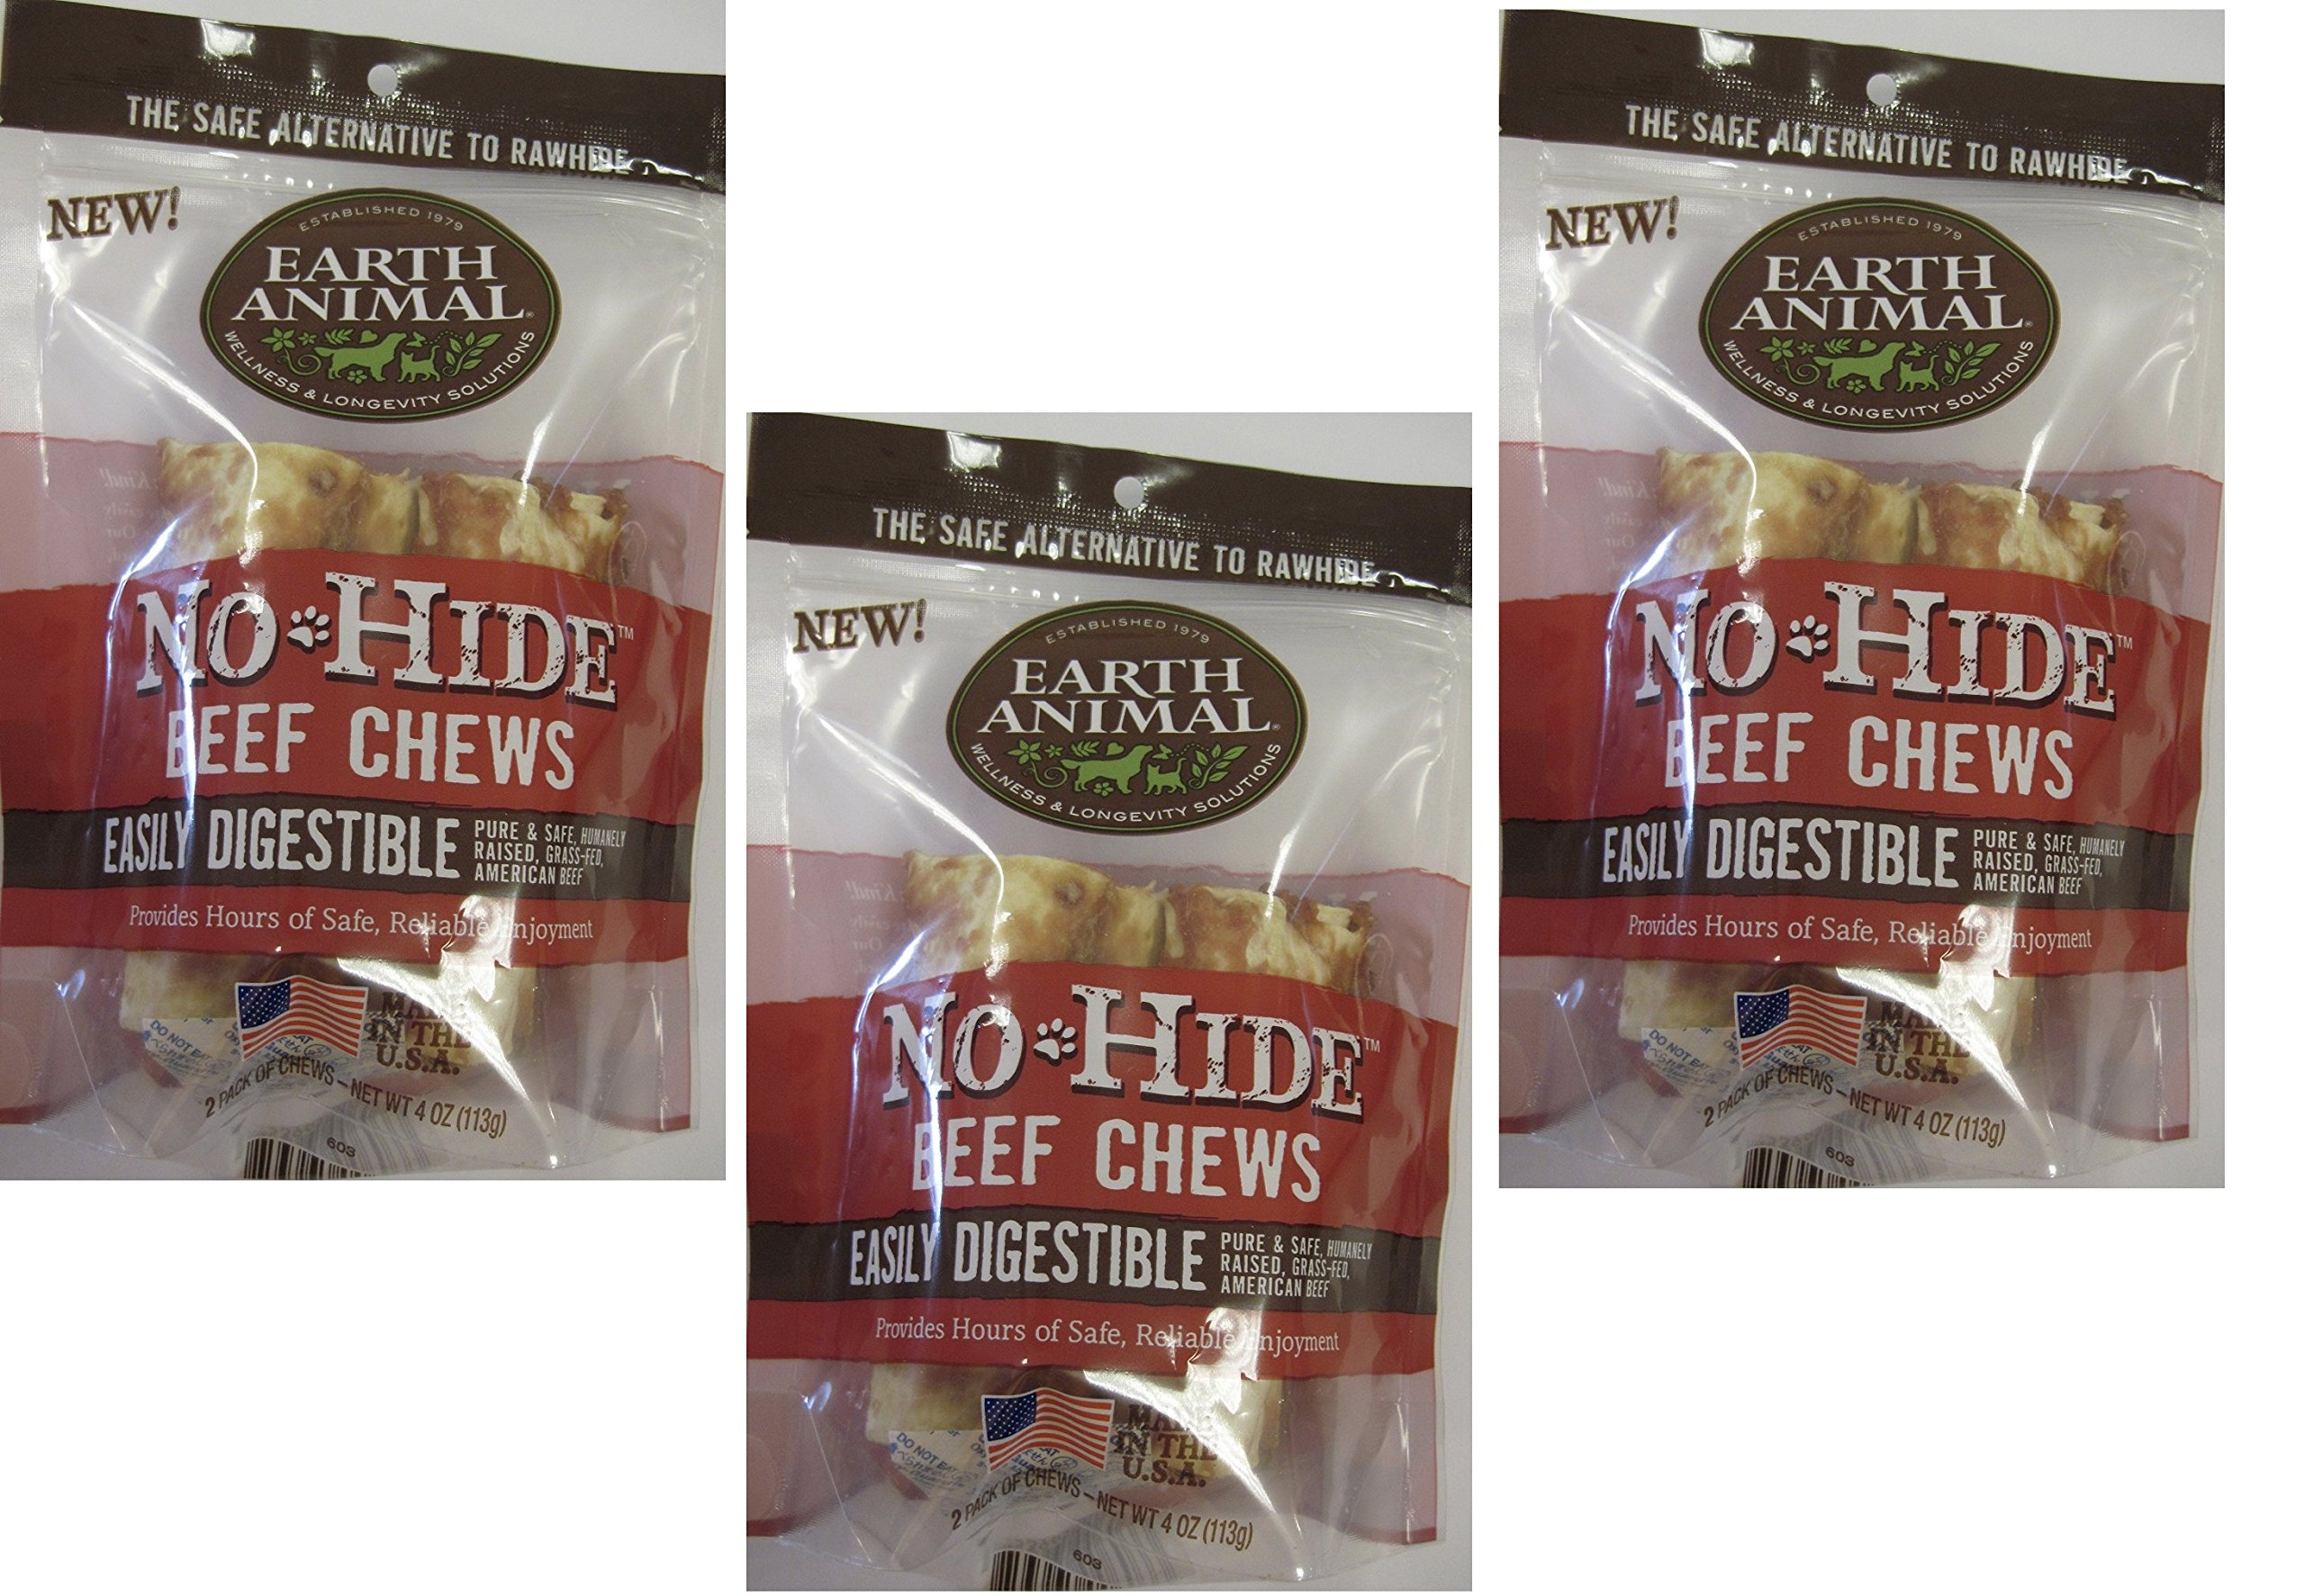 (3 Packages) Earth Animal No-Hide Beef Chews 4'' (2 Chew Per Pack, 6 Chew Total)